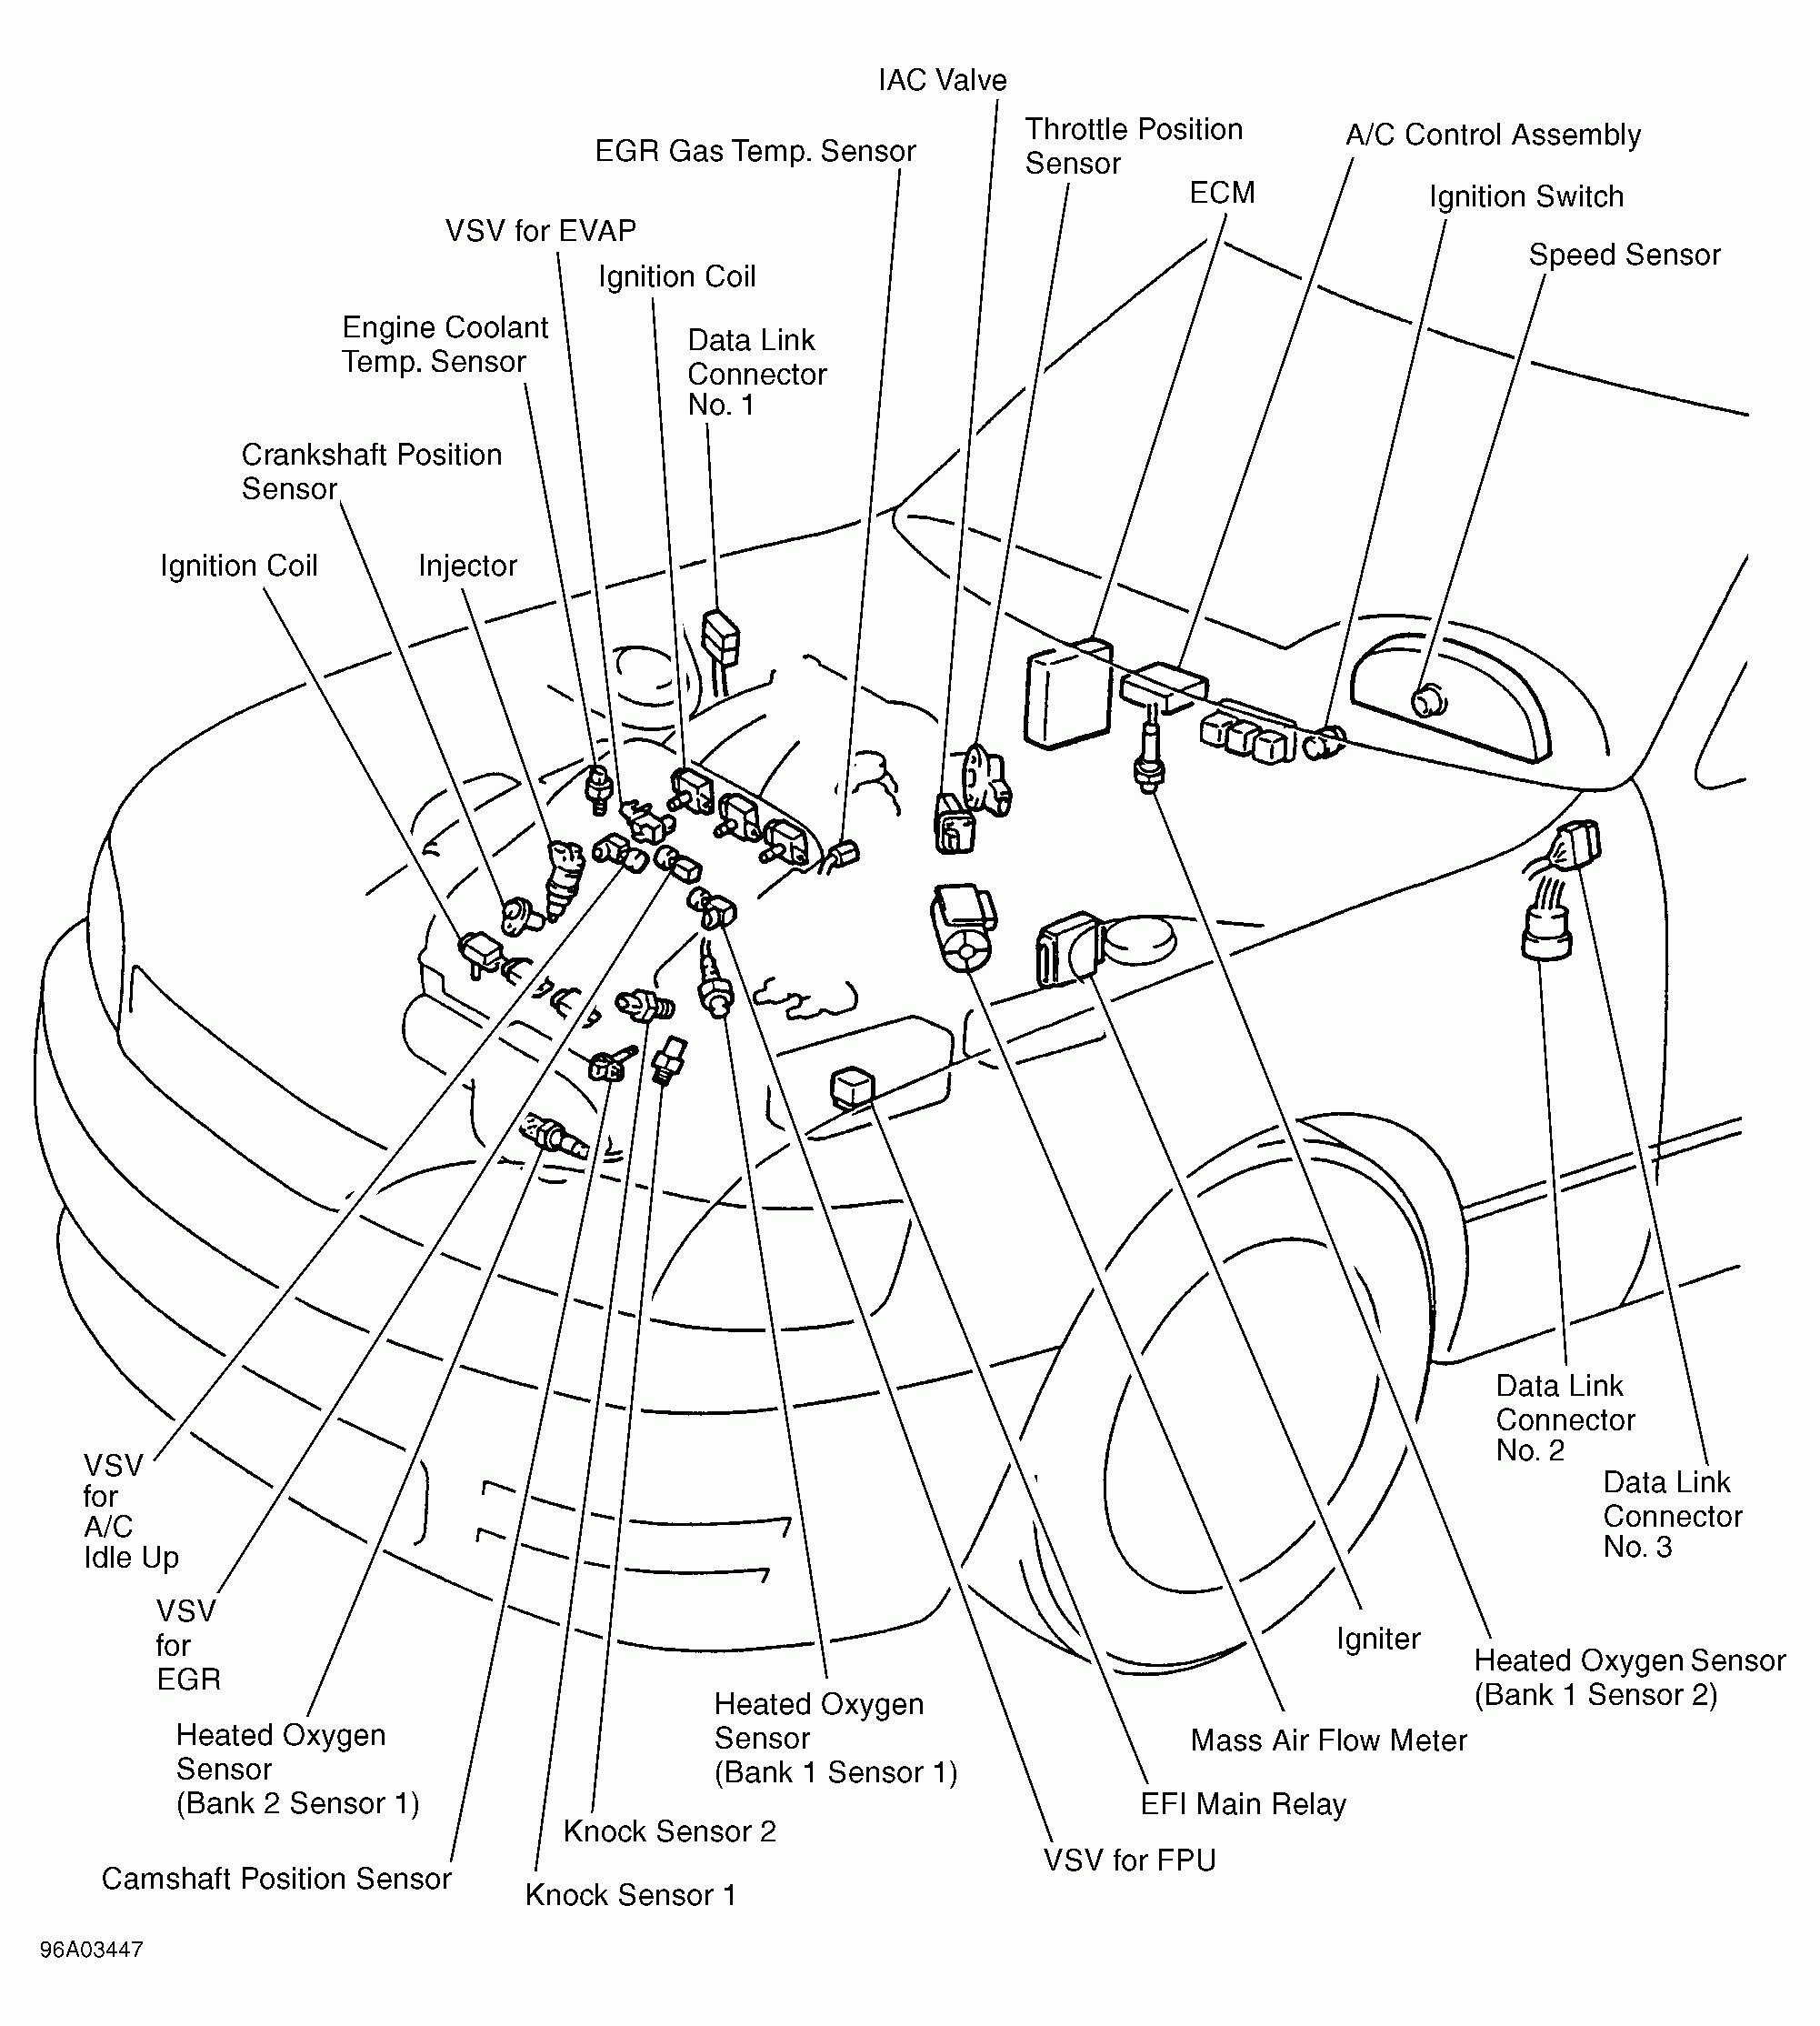 2005 Pt Cruiser Engine Diagram 2006 Pt Cruiser 2 4l Engine Diagram Trusted Wiring Diagrams • Of 2005 Pt Cruiser Engine Diagram 2005 Pt Cruiser Wiring Diagram Http Wwwfixya Cars T